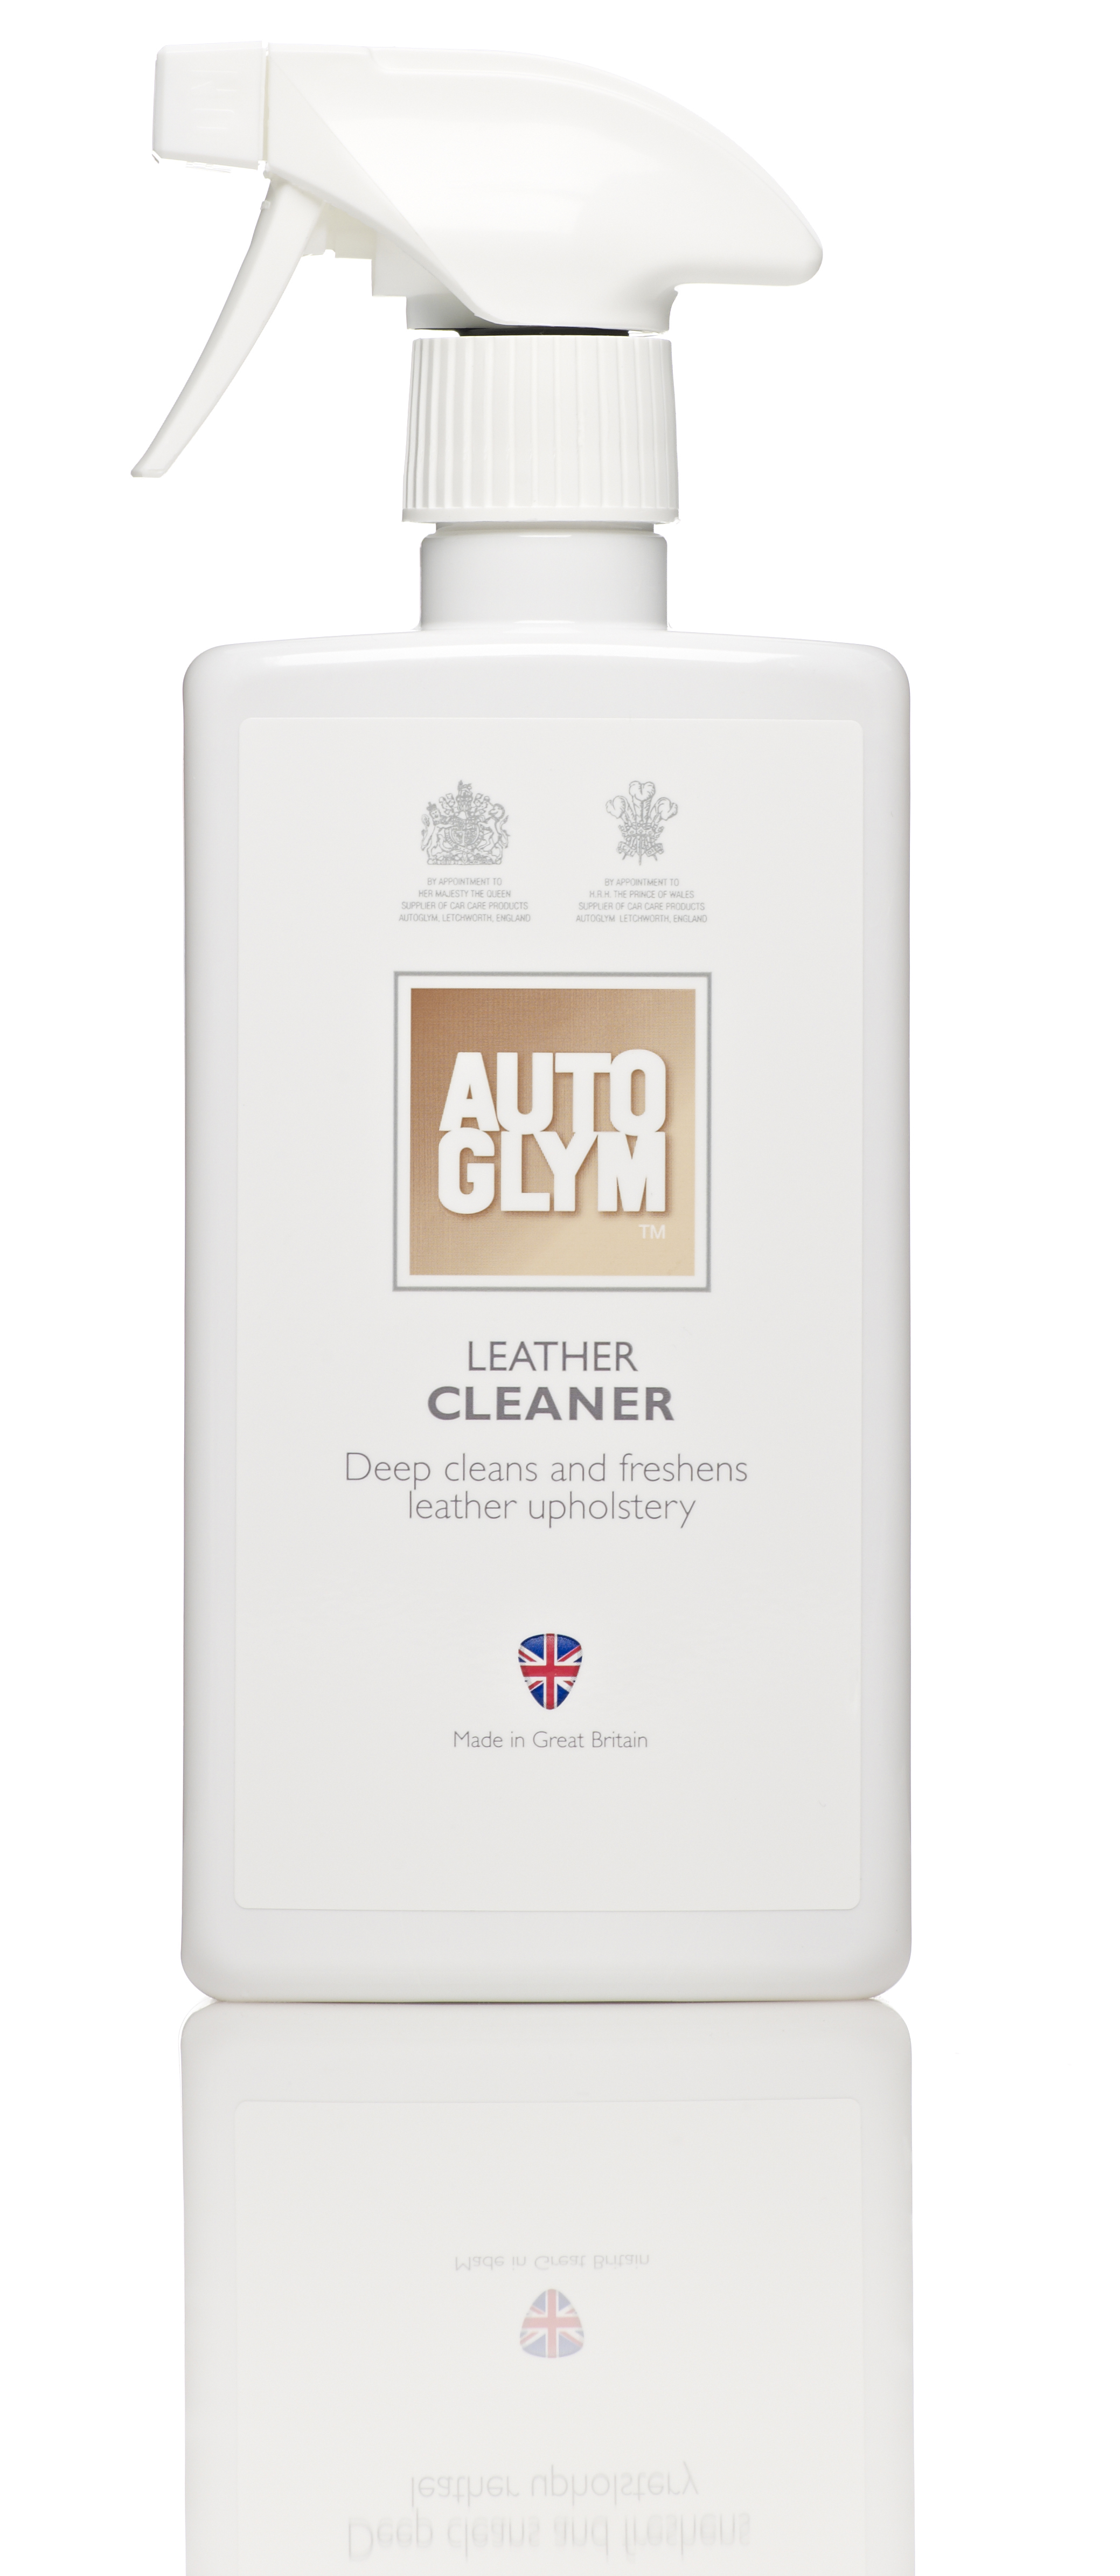 AUTOGGLYM LEATHER CLEANER